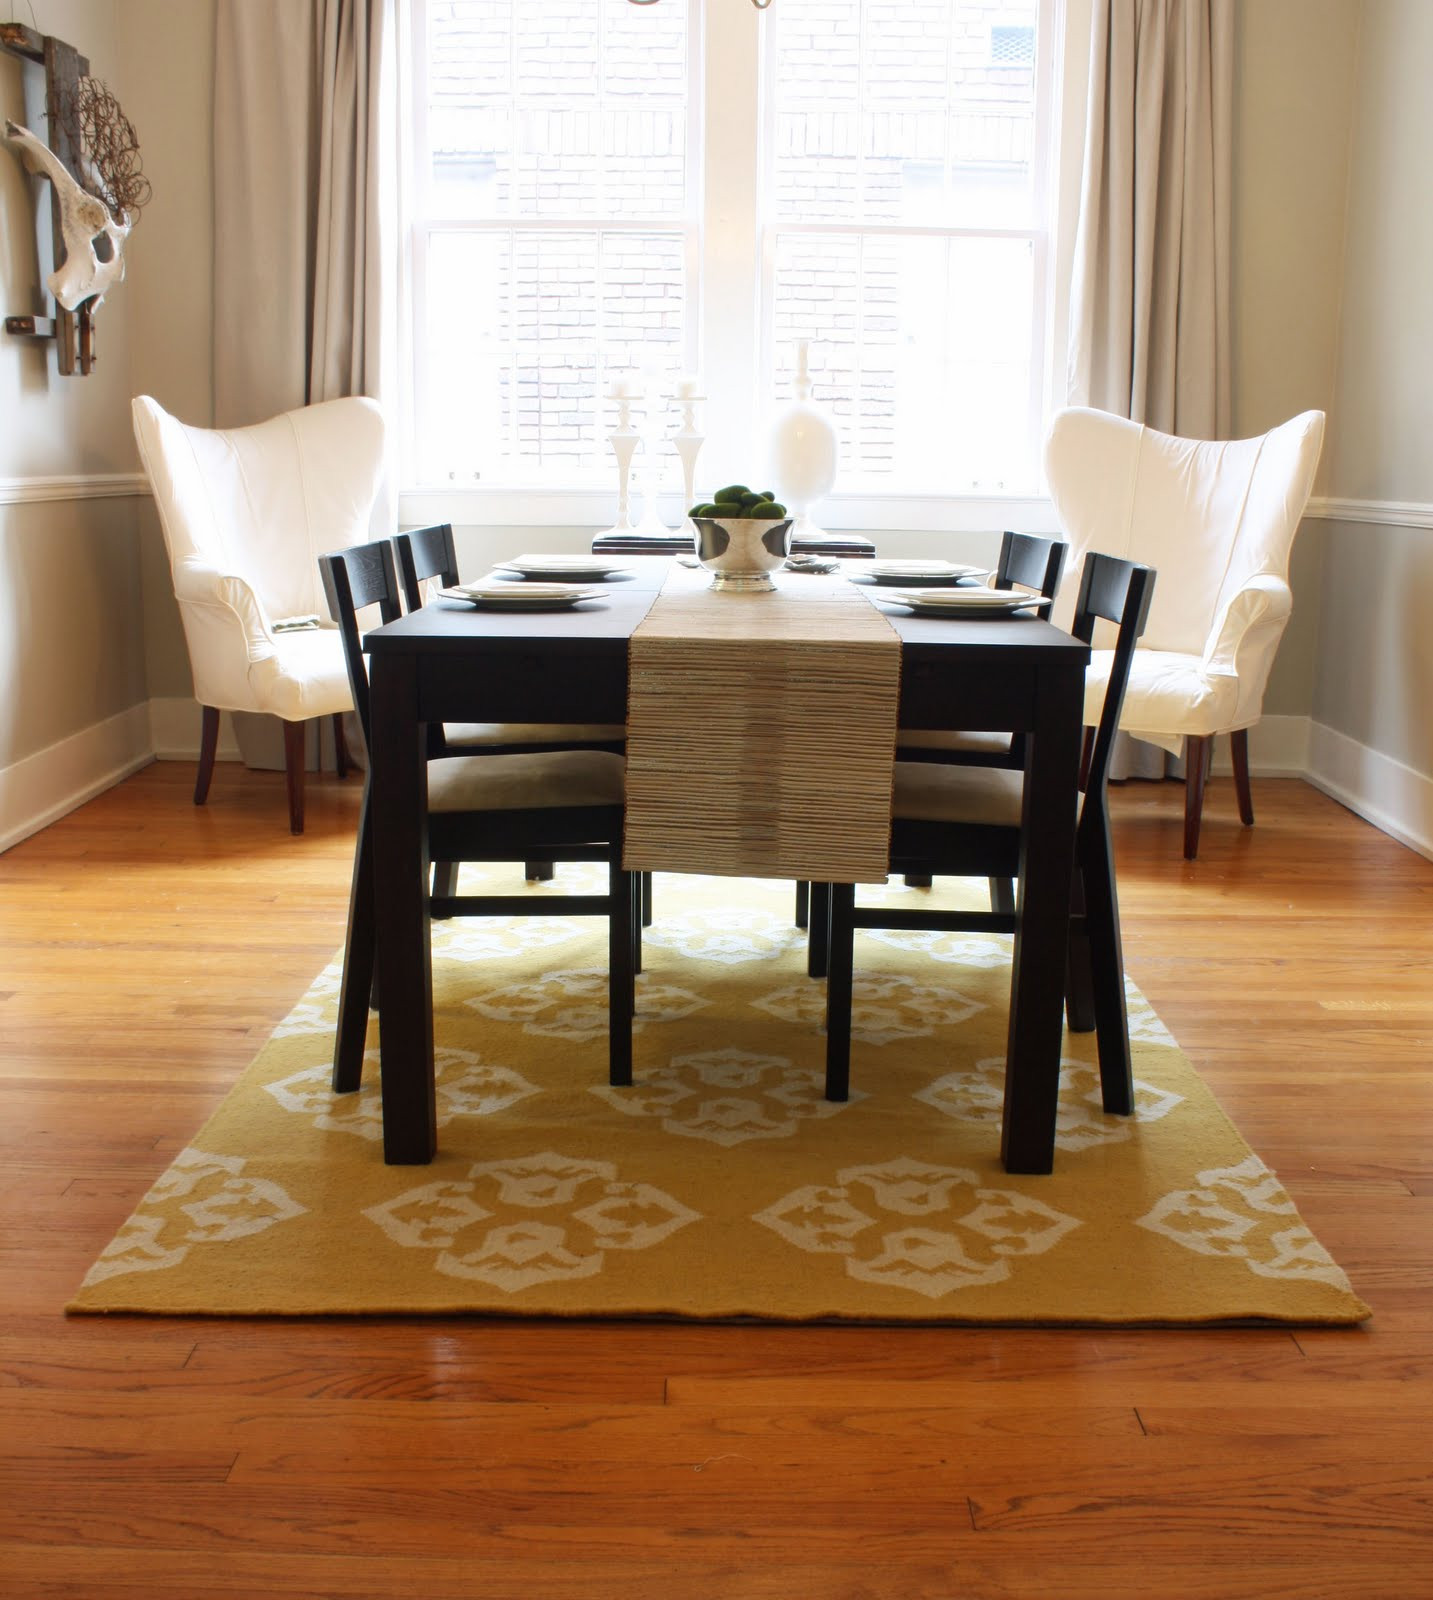 Best ideas about Rugs For Dining Room . Save or Pin Pretty Dining Room Rugs Interior Design and Decor Traba Now.